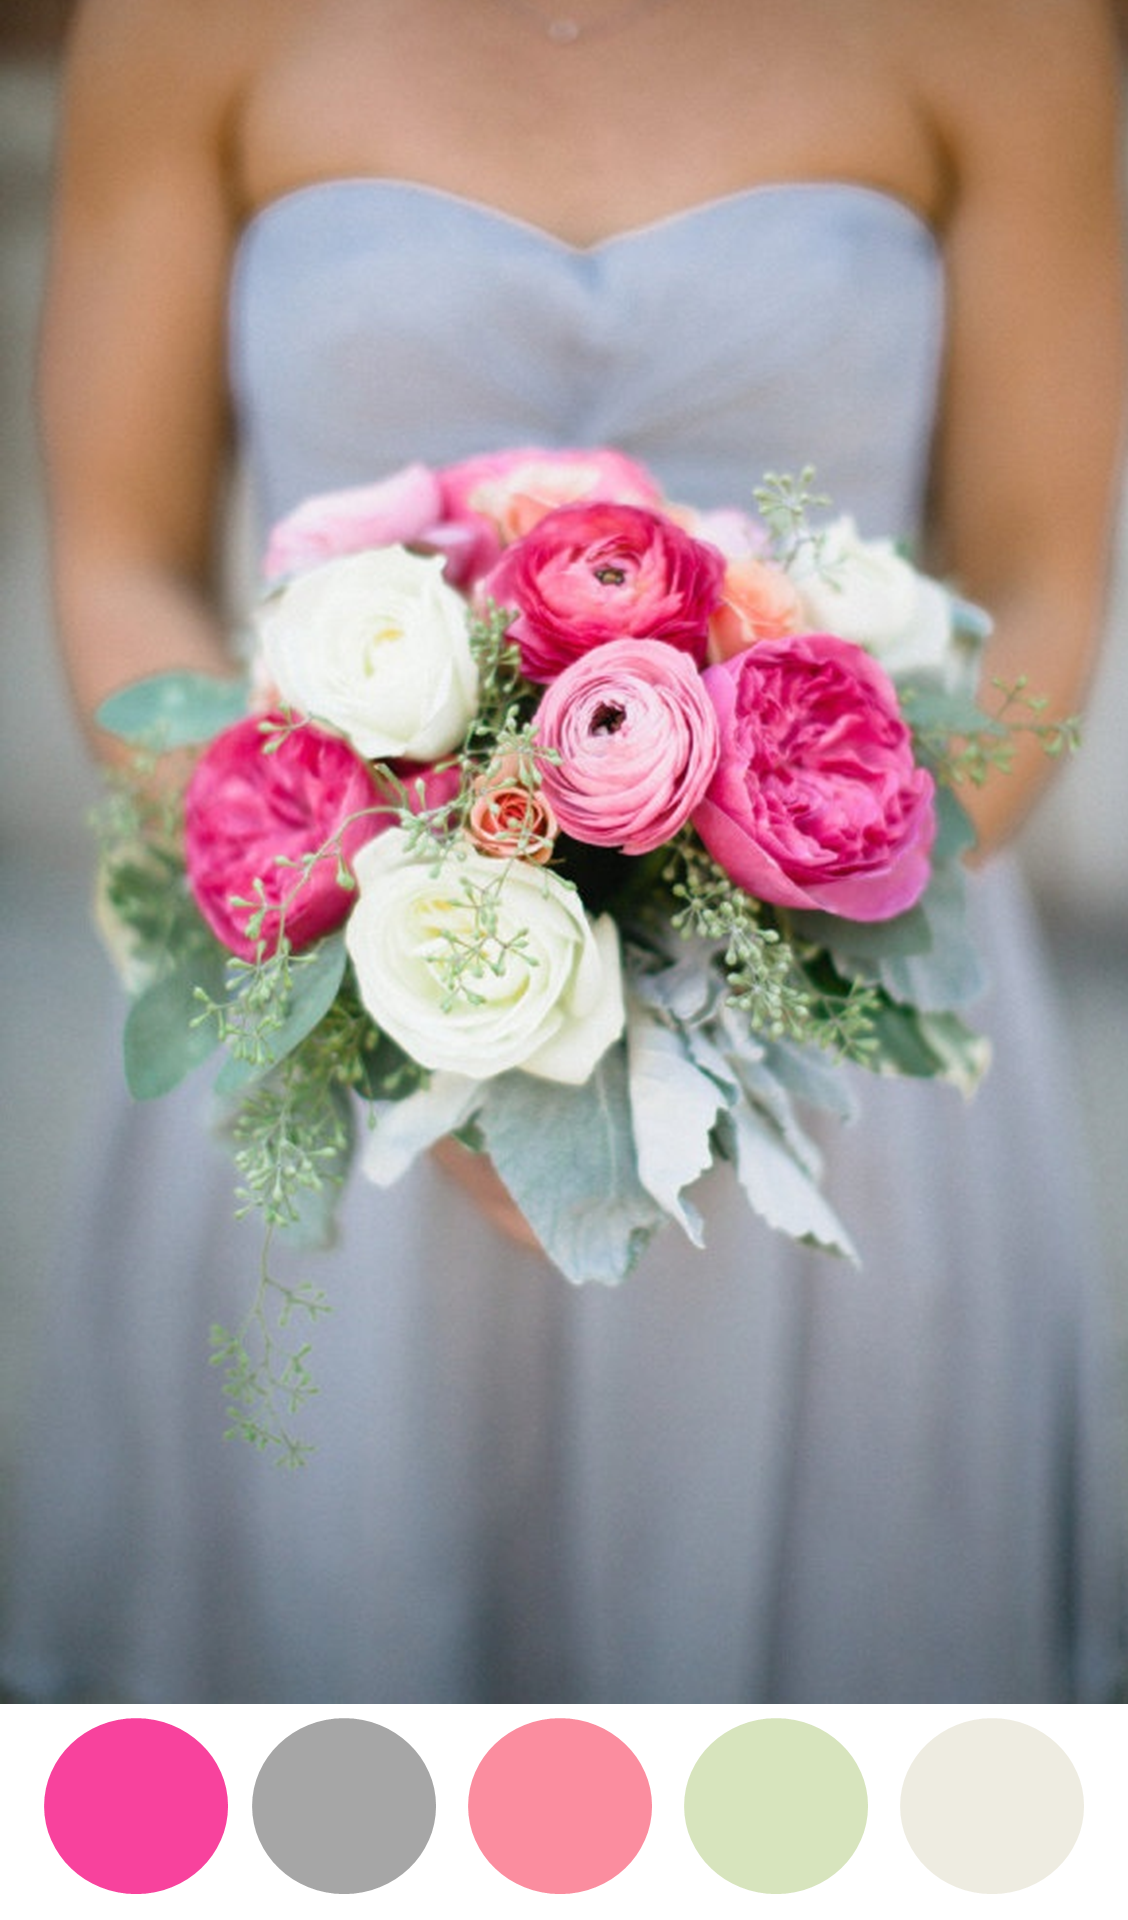 Grey wedding decoration ideas   Colorful Bouquets for Your Wedding Day  Neutral Weddings and